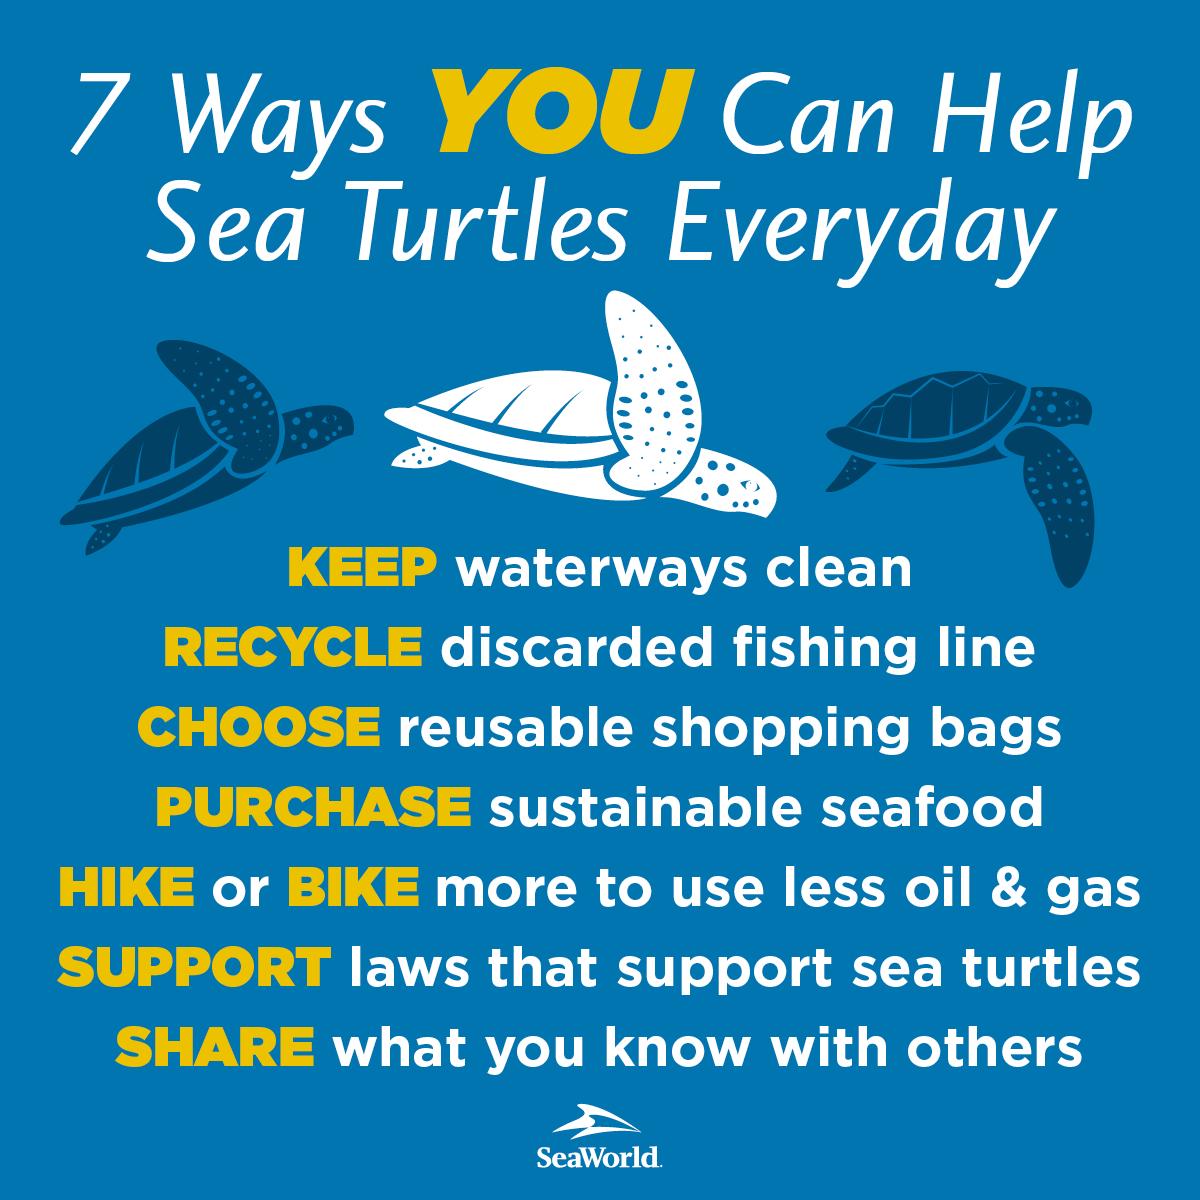 7 Ways You Can Help Sea Turtles Everyday